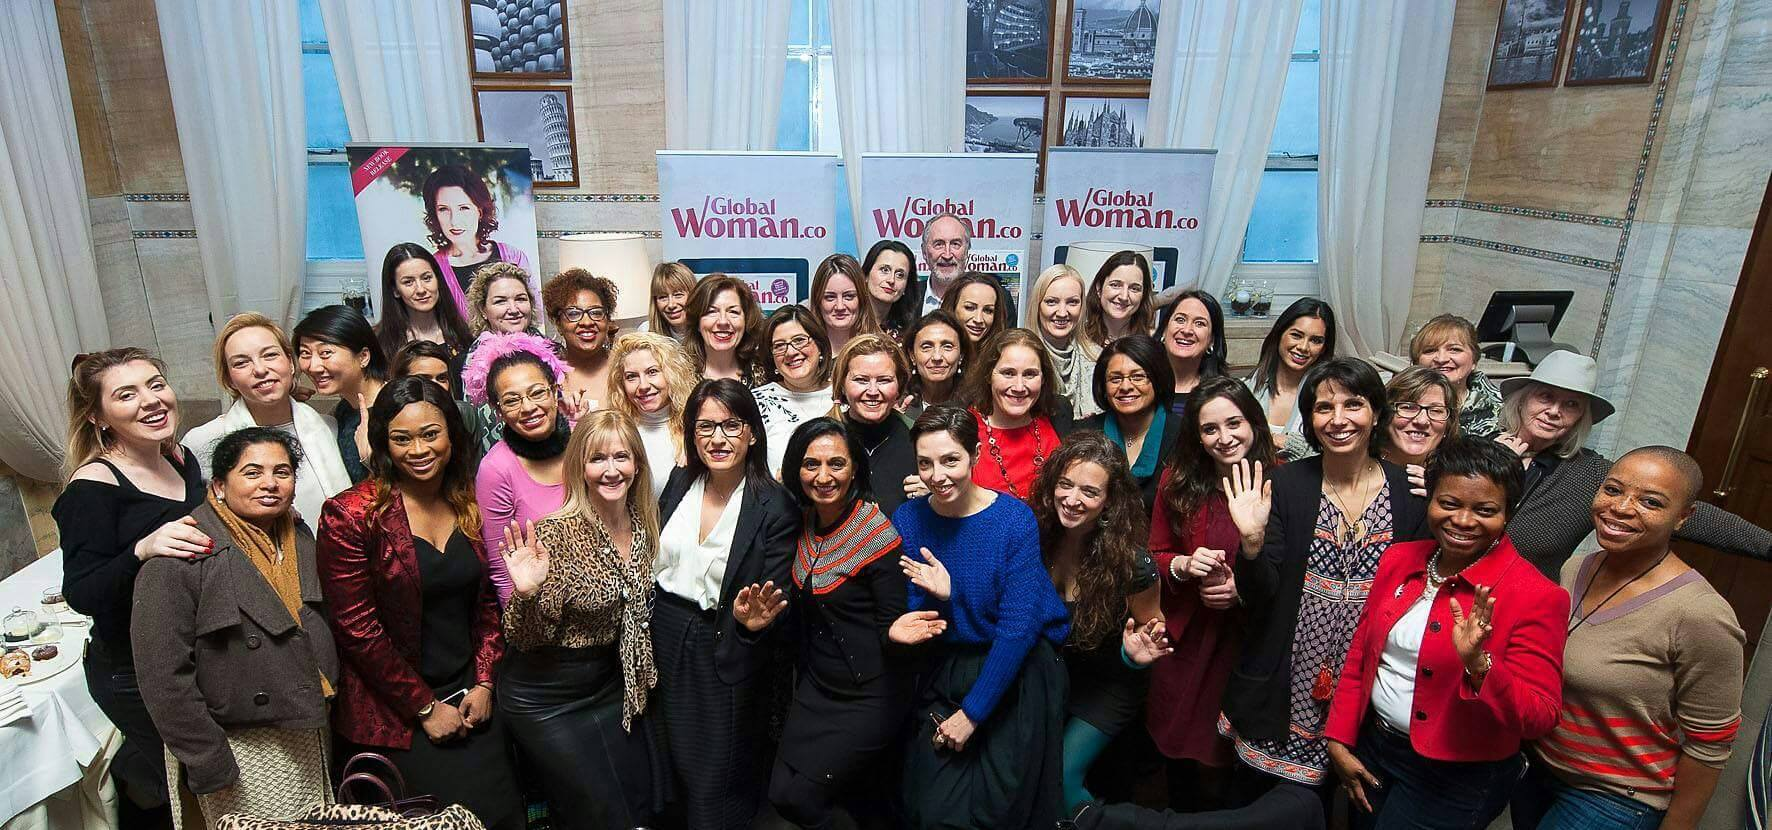 https://www.eventbrite.co.uk/e/business-breakfast-event-global-woman-club-london-tickets-33371188122